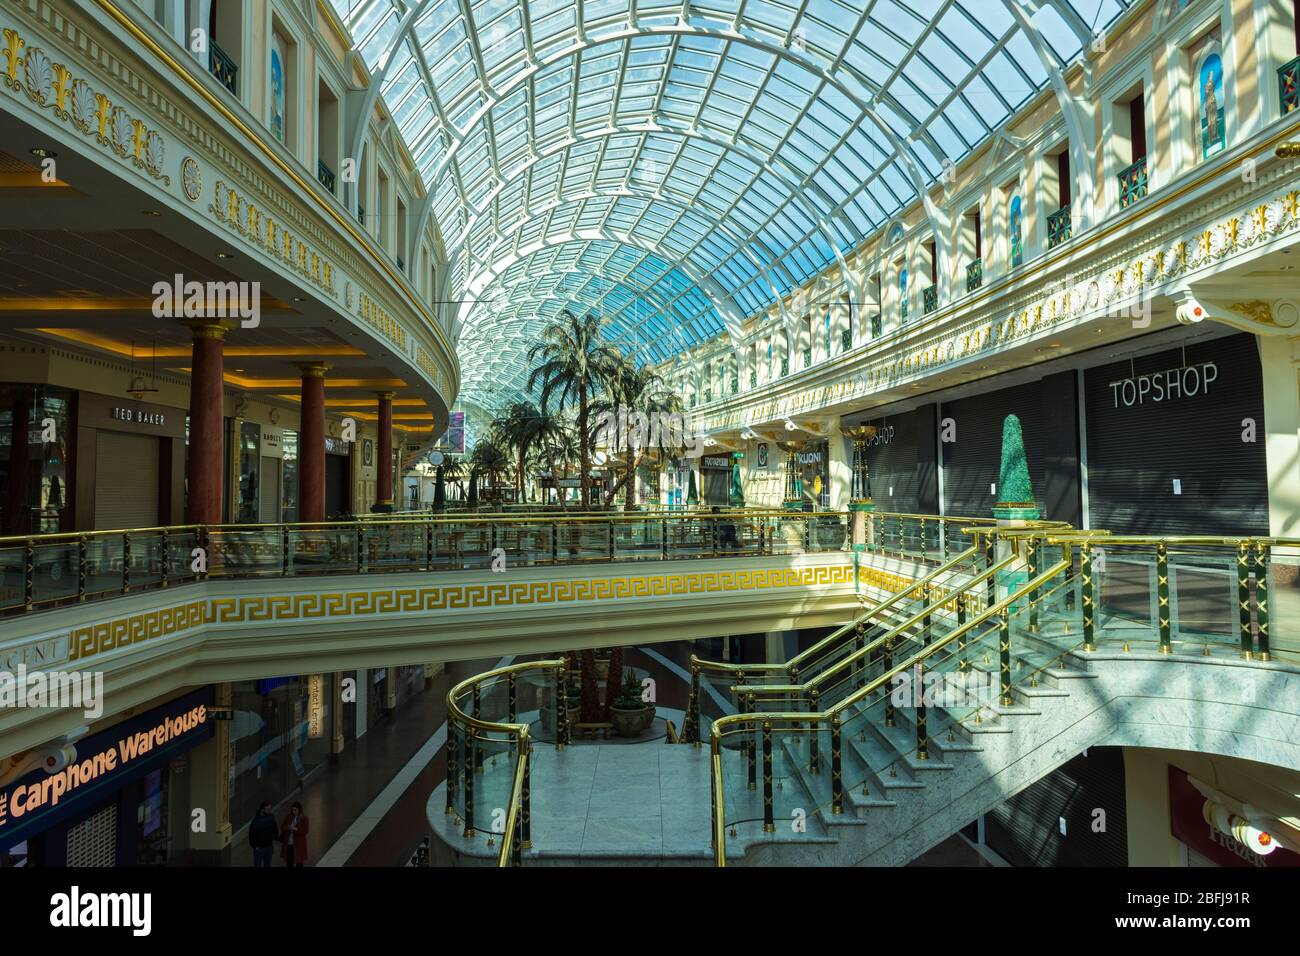 inside-the-trafford-centre-shopping-mall